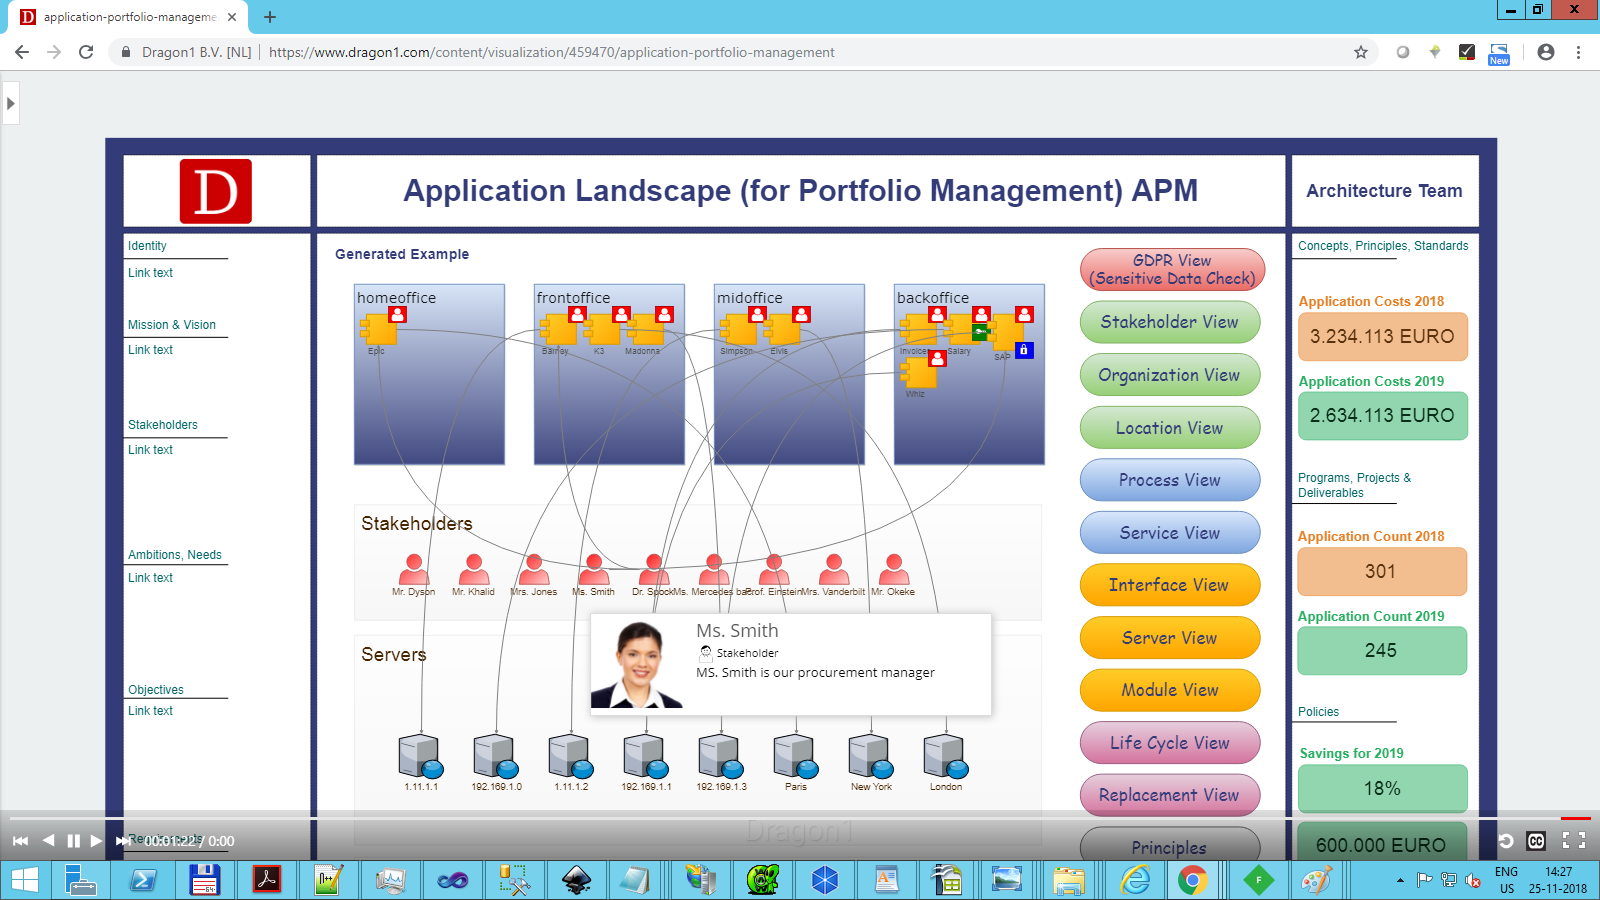 Application Portfolio Management Use Case - Dragon1